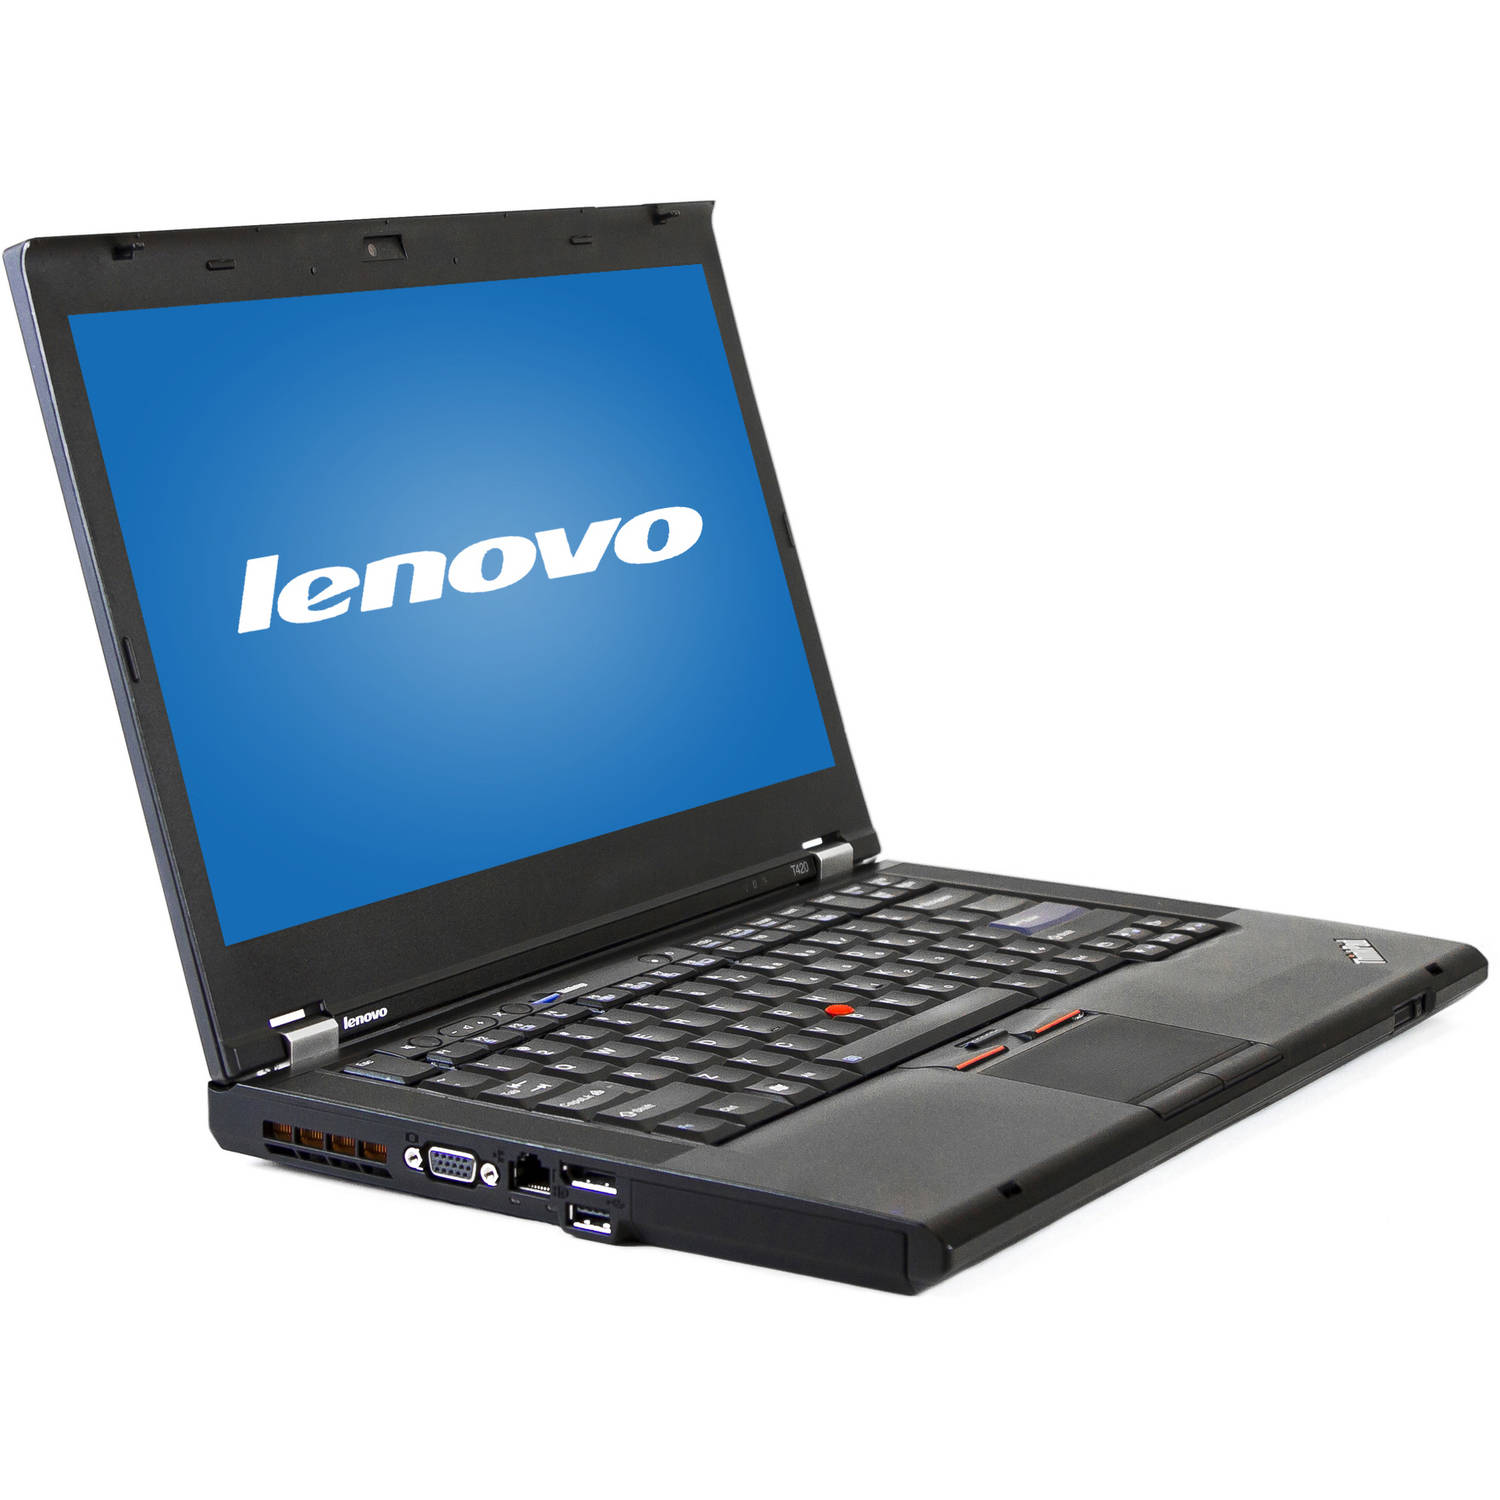 "Refurbished Lenovo Silver 14"" T420 Laptop PC with Intel Core i5 Processor, 4GB Memory, 250GB Hard Drive and Windows 7 Professional"